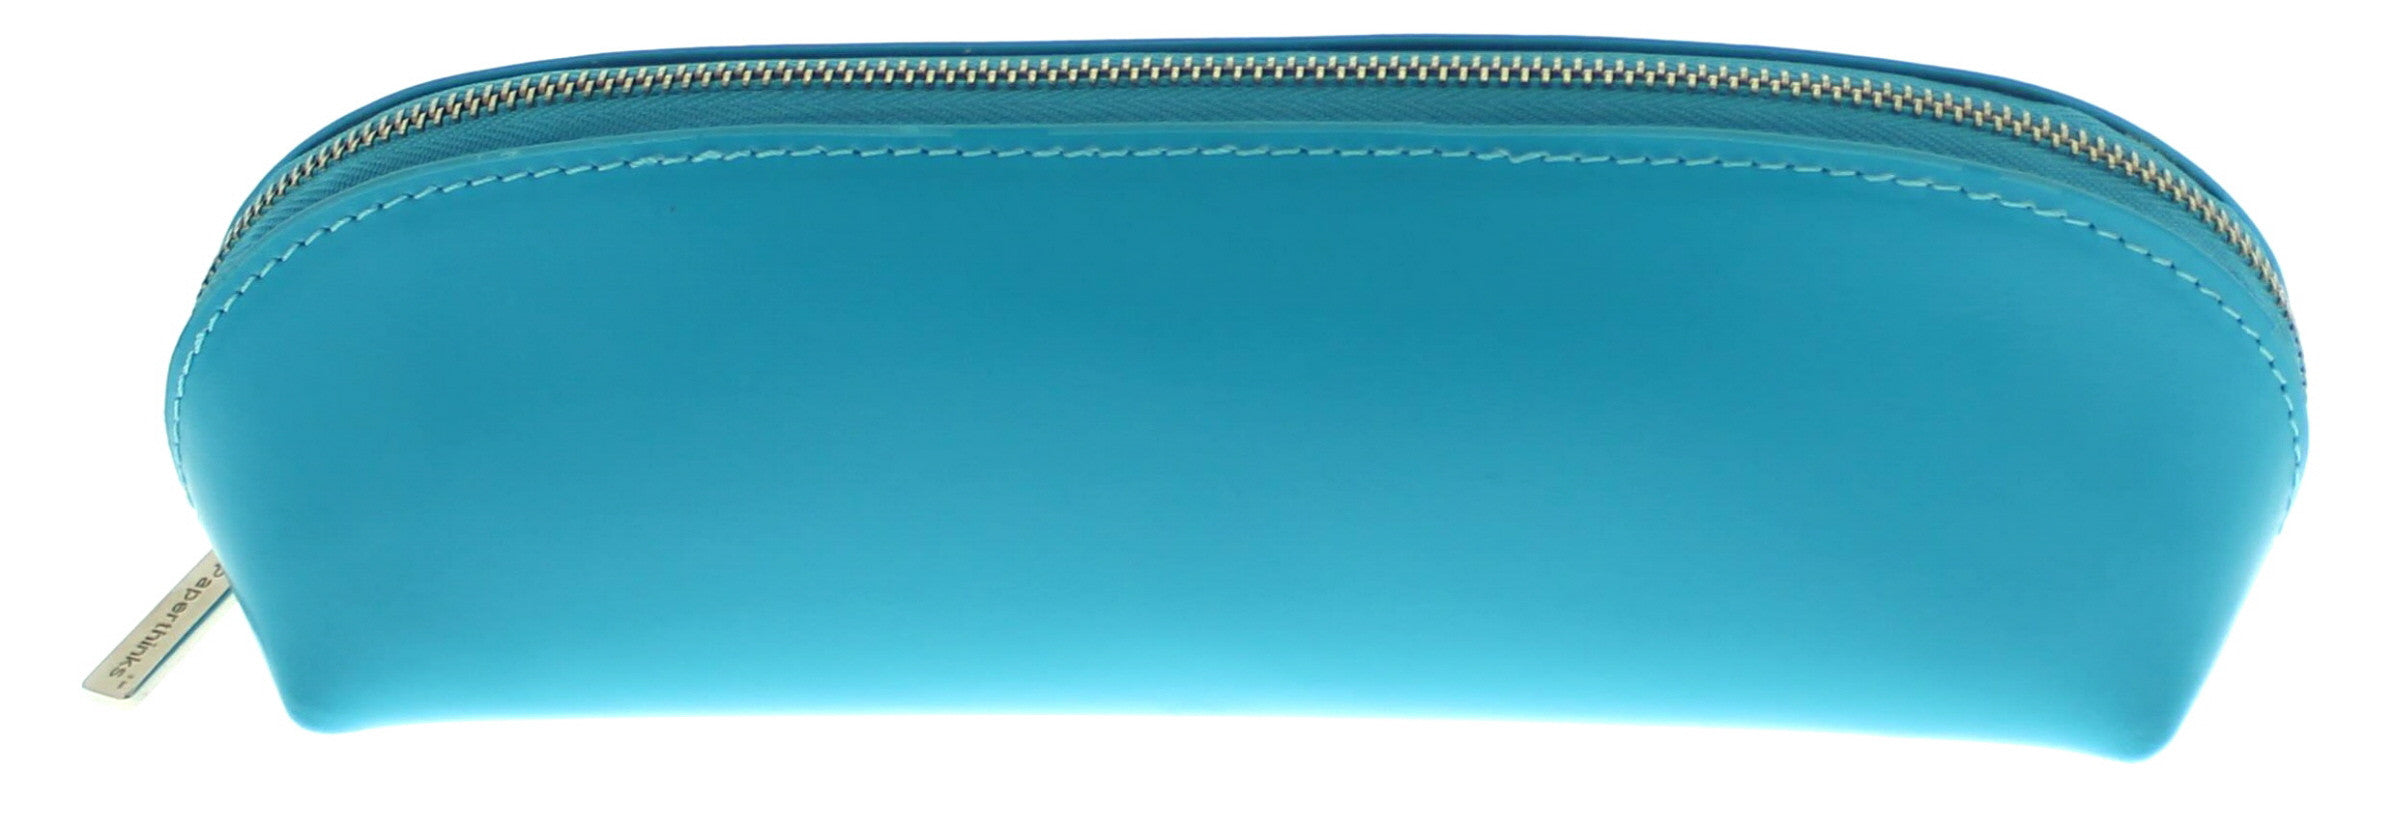 Turquoise Long Pouch